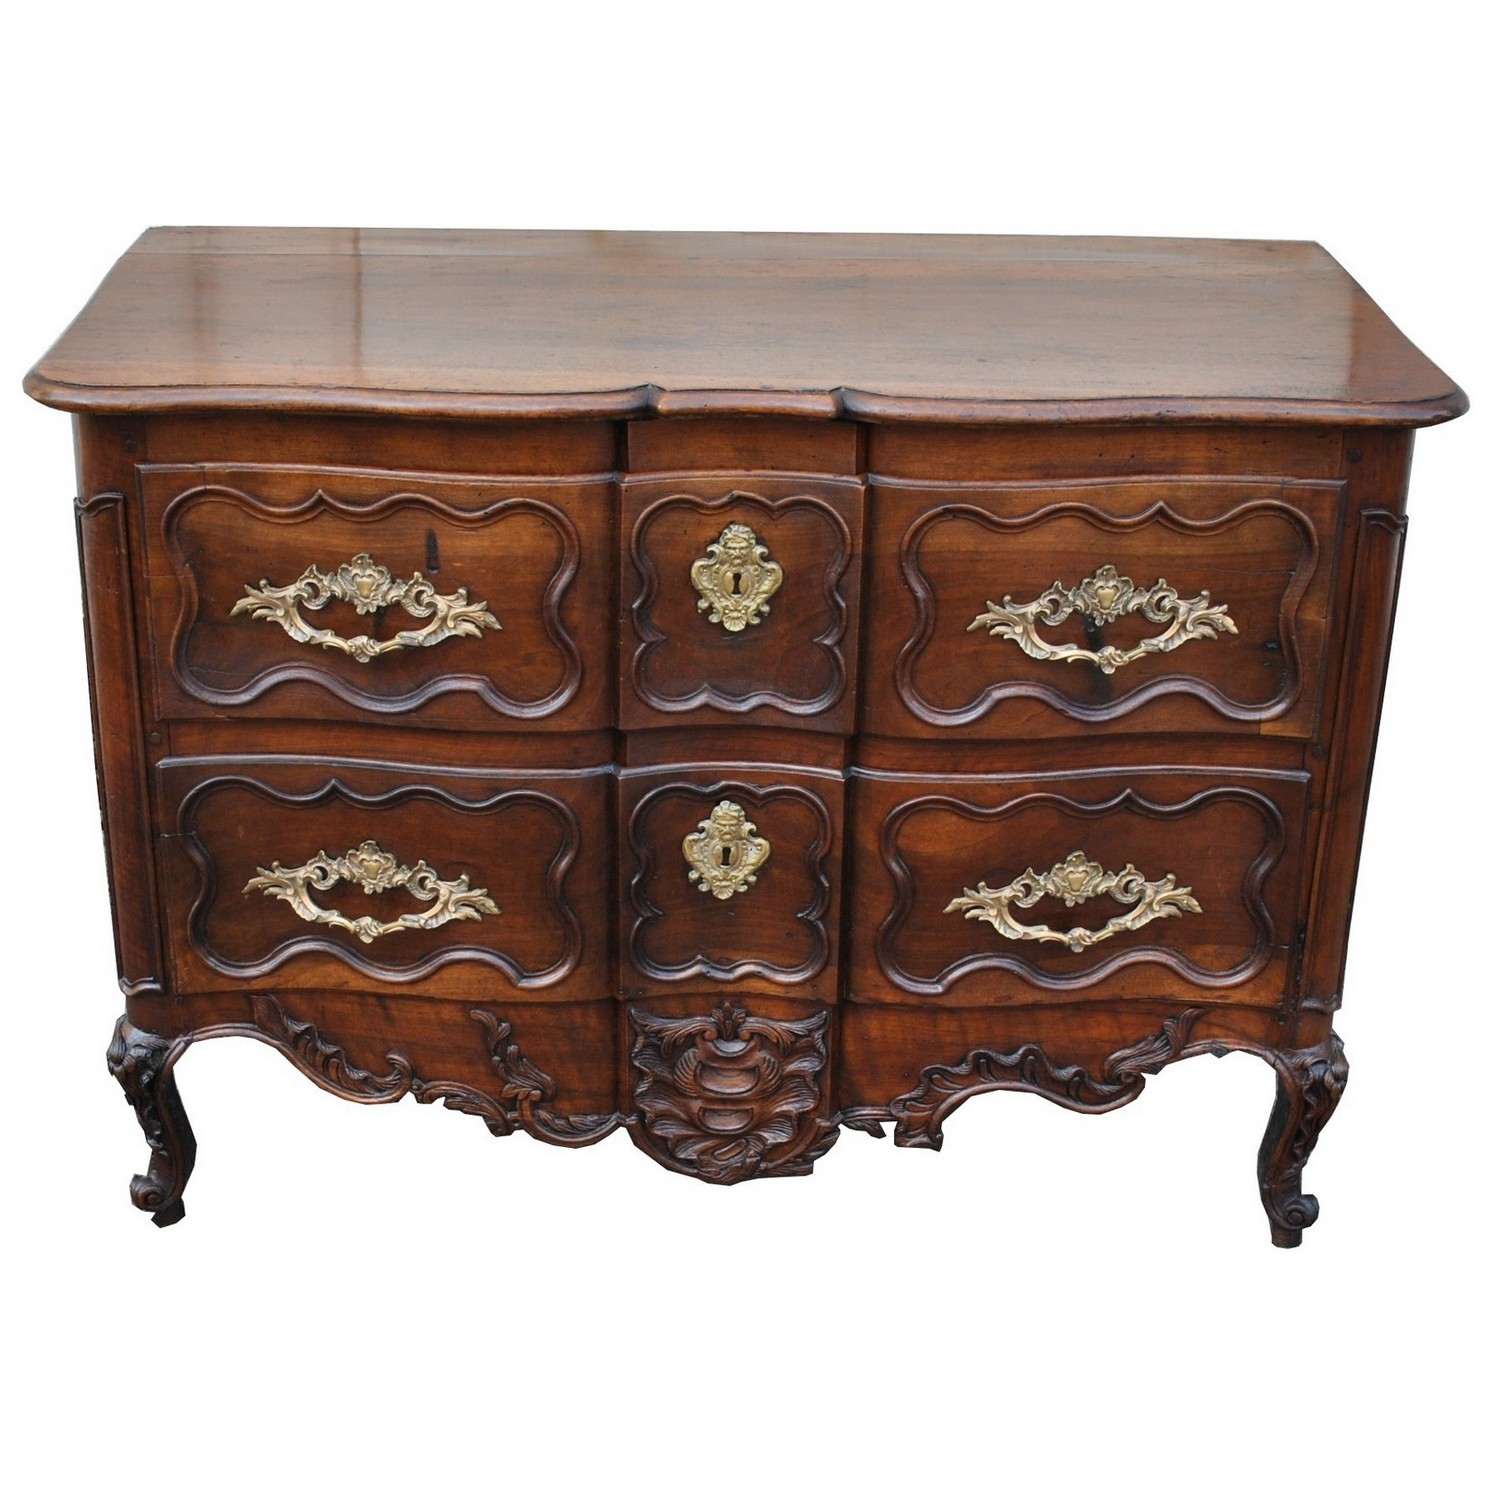 Commode Provencale En Noyer Sculpte Xviiieme Siecle Trianon